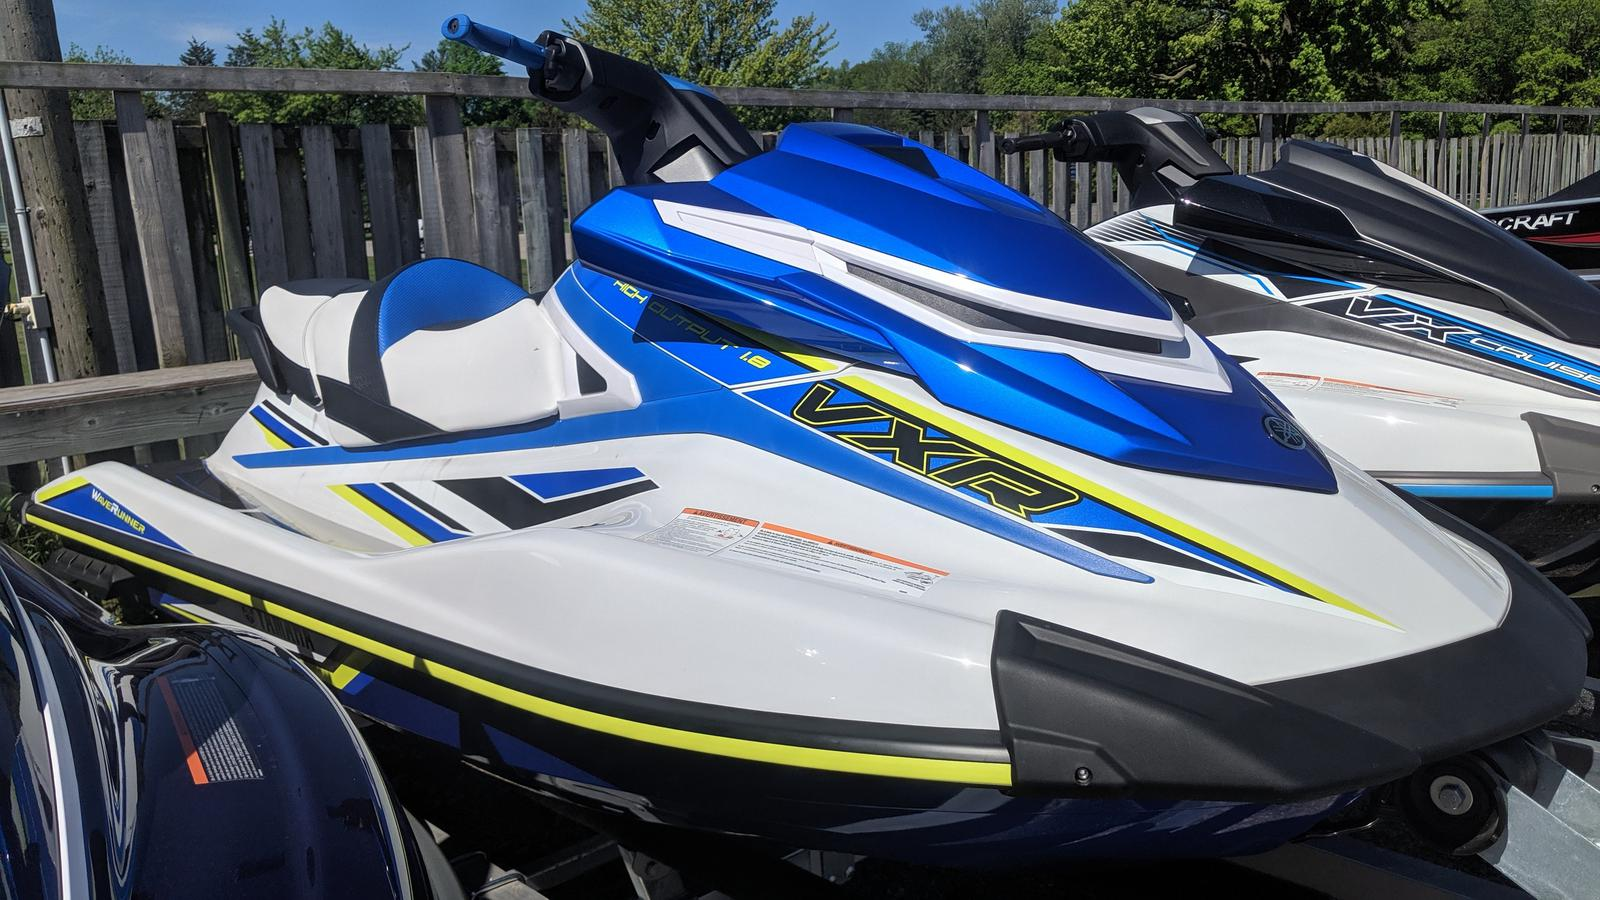 Inventory from Yamaha Southwest Marine Services Grand Bend